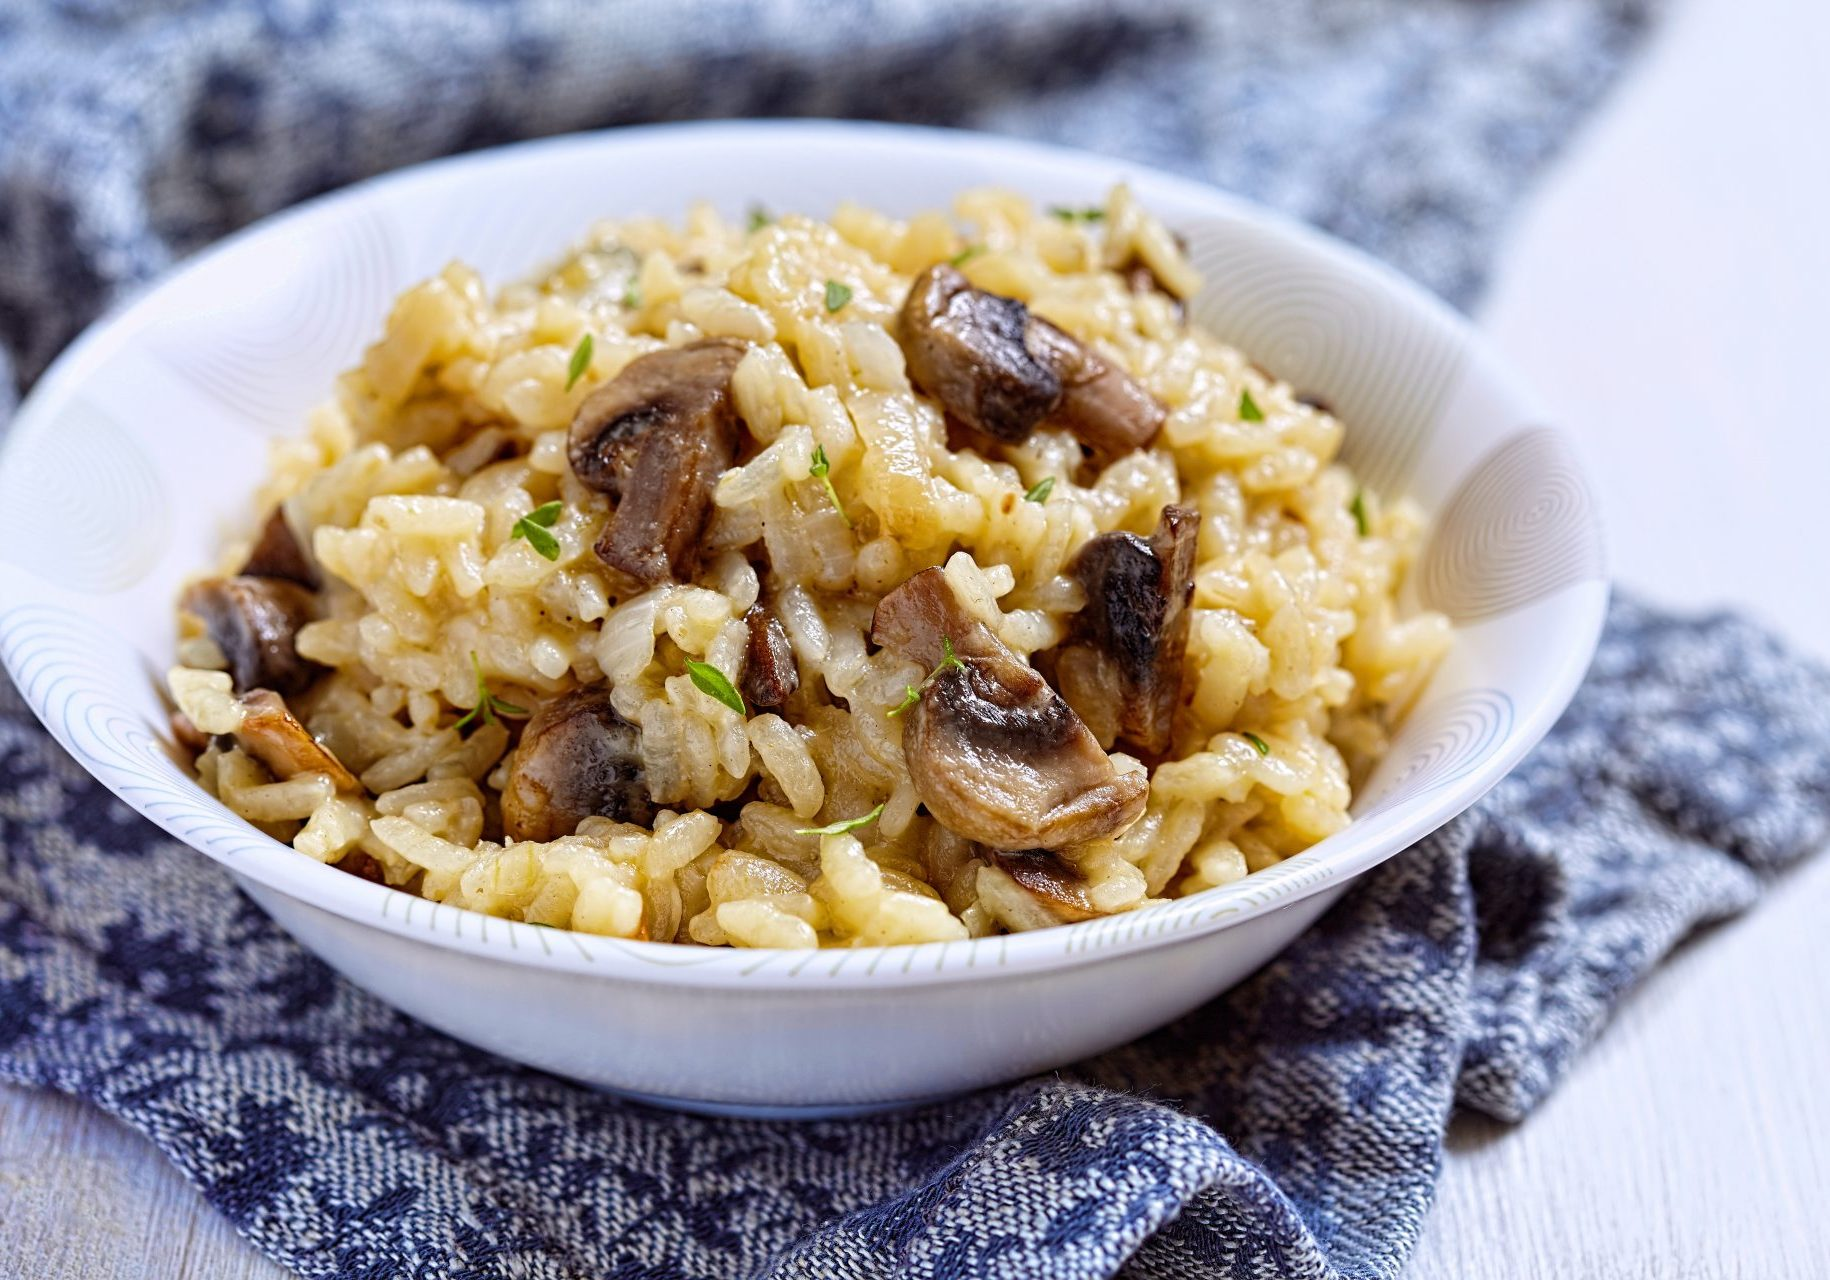 rice with mushrooms in a bowl on a blue napkin